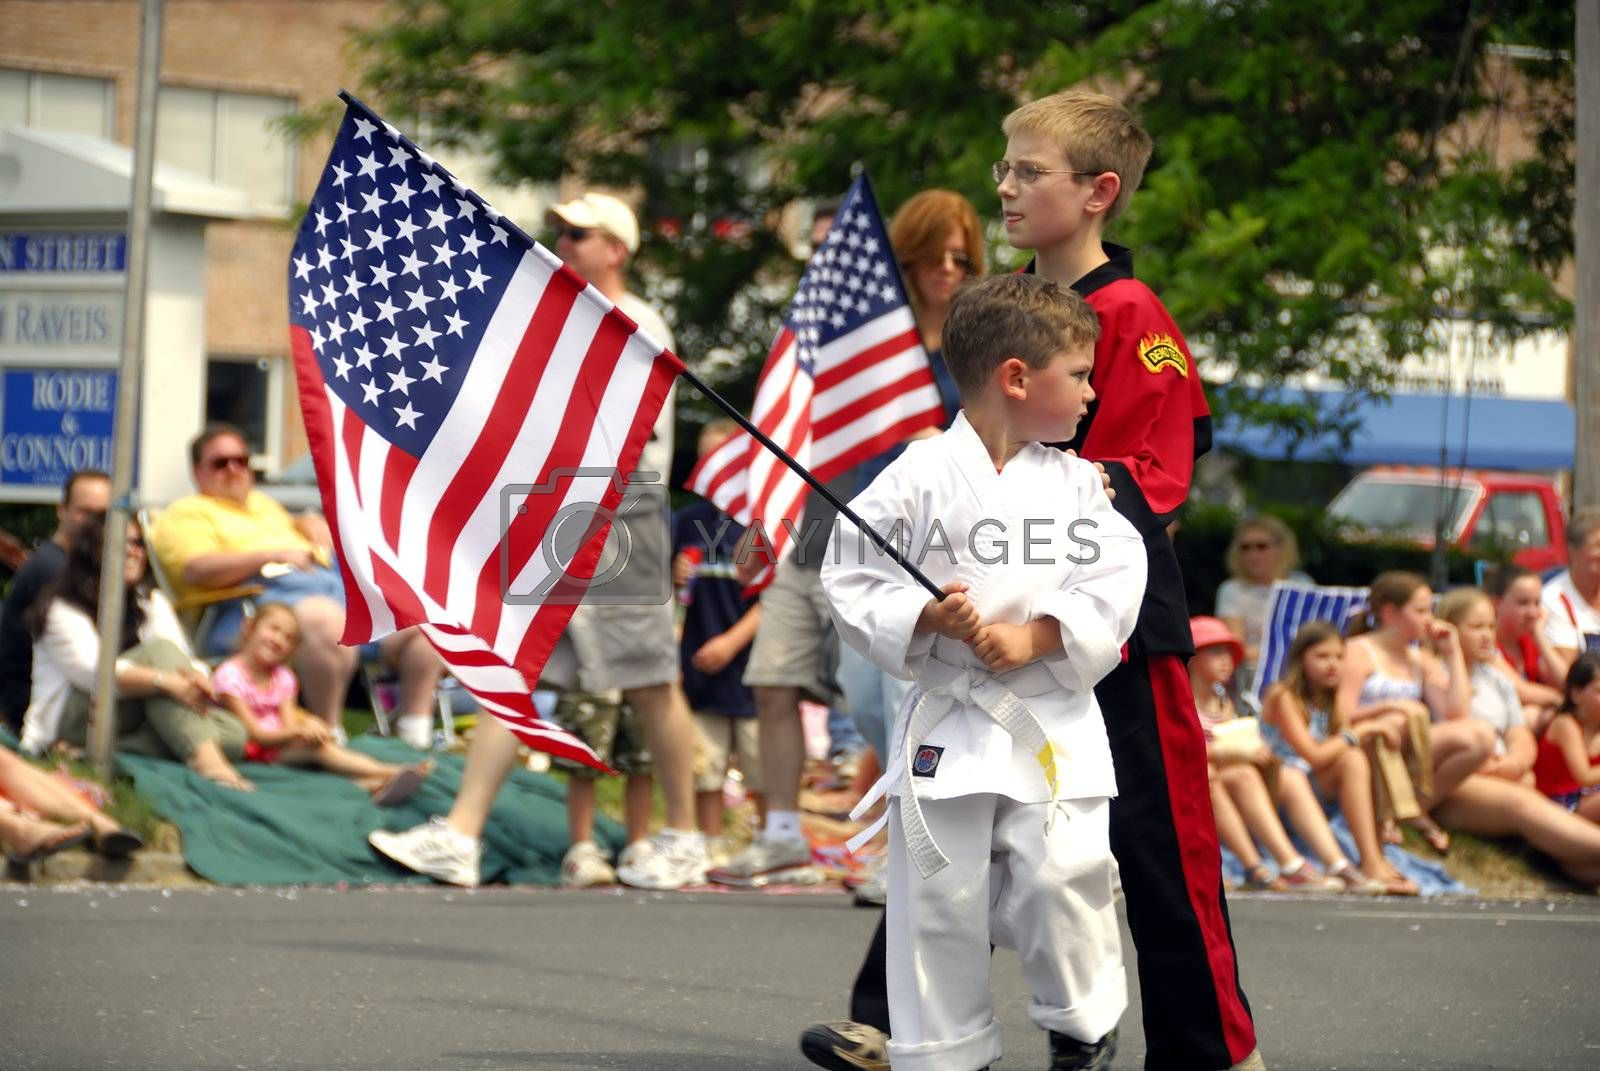 A group of kids walking in the memorial day parade